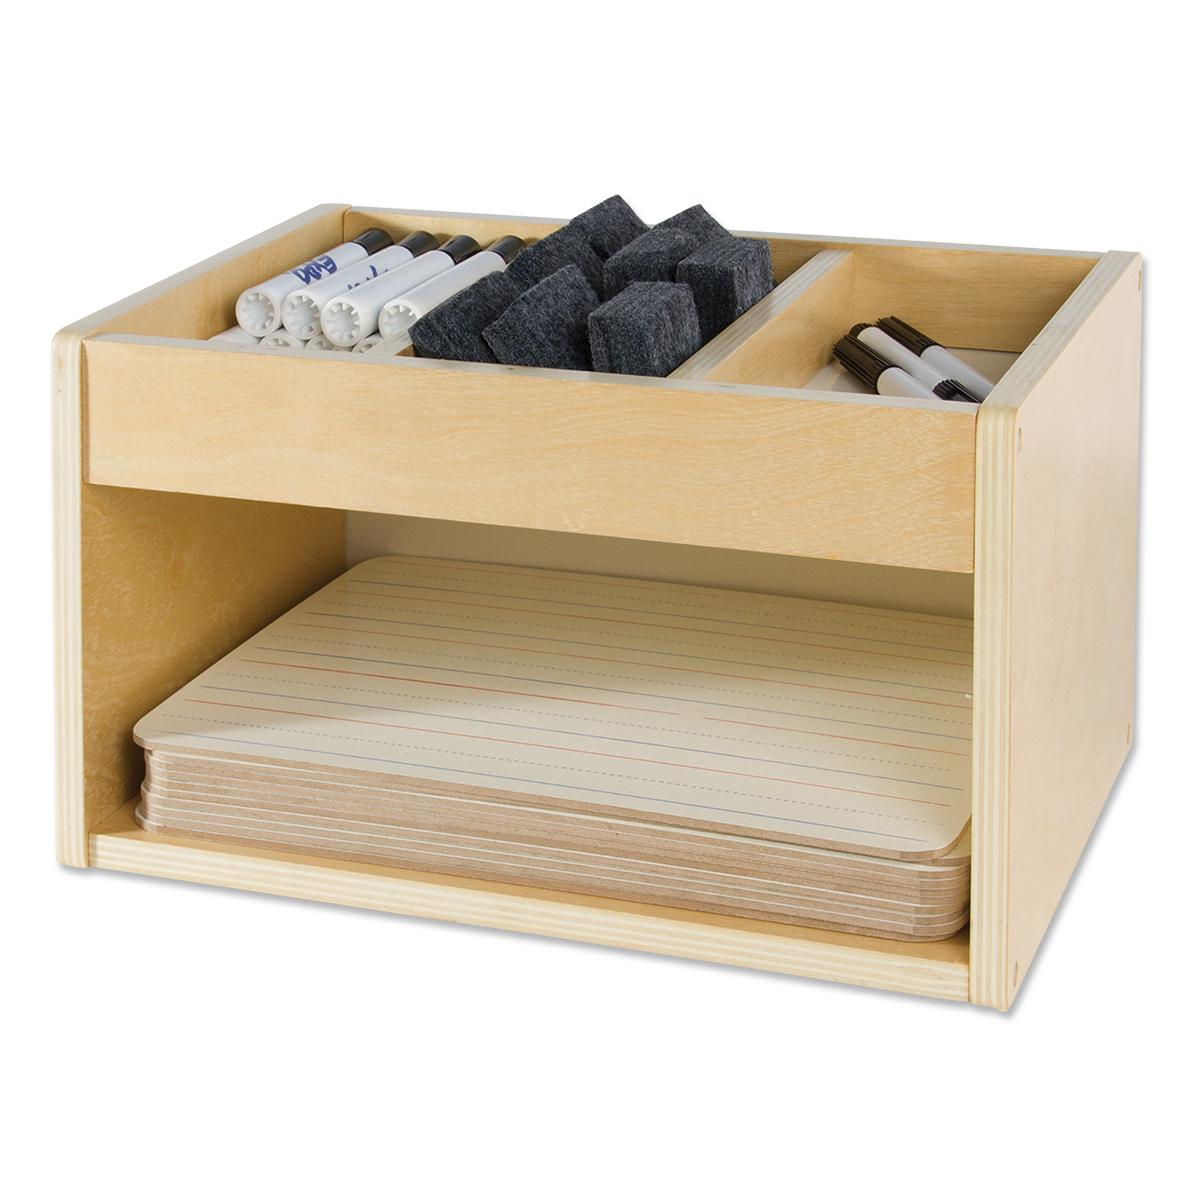 Wooden Whiteboard Caddy with 10 Whiteboards